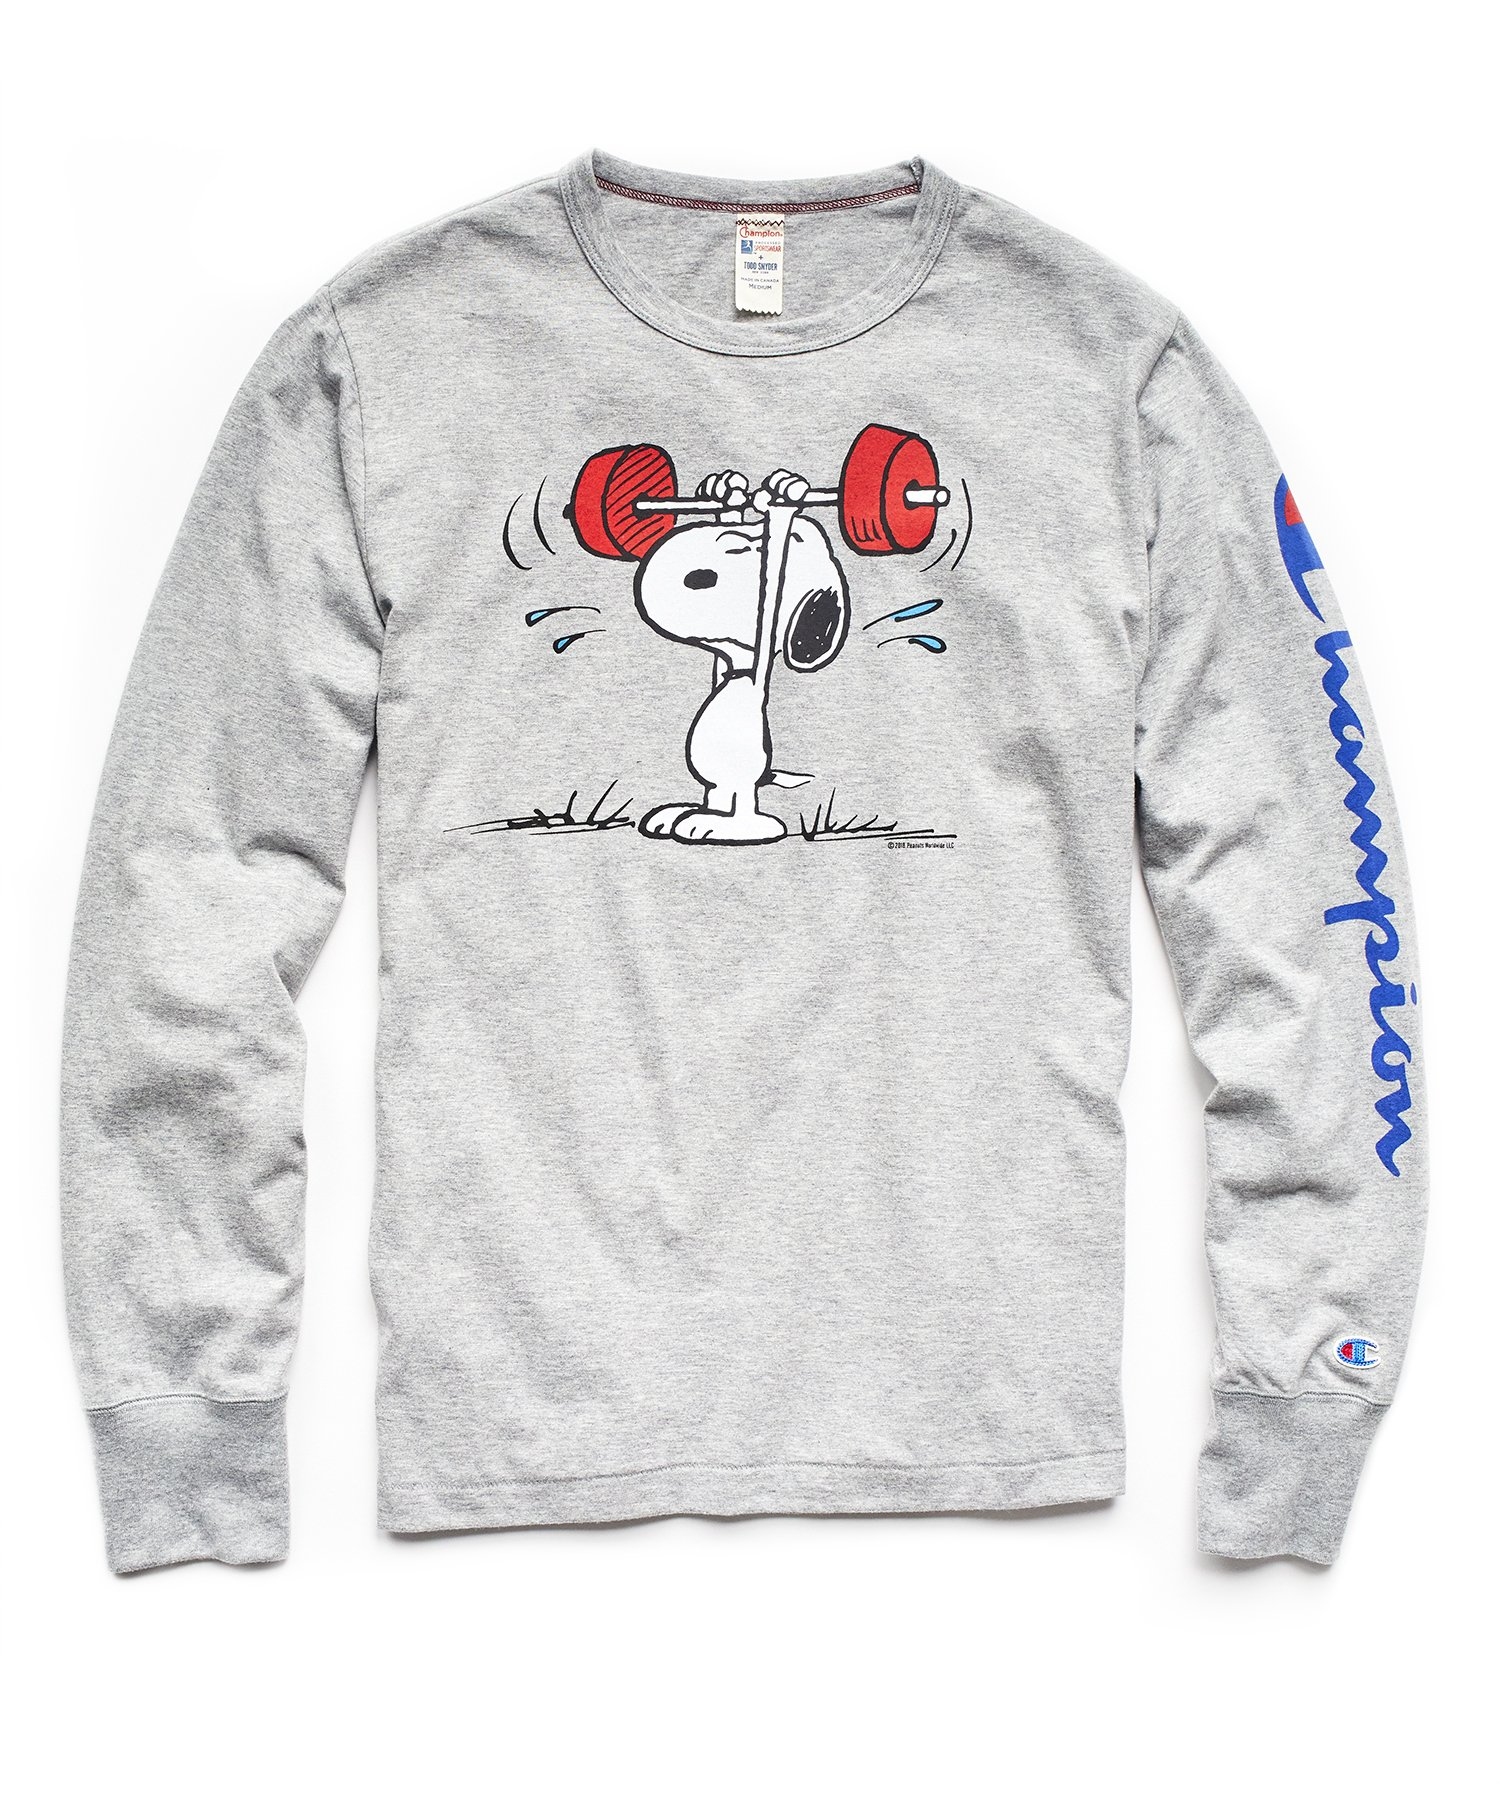 57c9c963a8c7 CHAMPION X PEANUTS LONG SLEEVE SNOOPY WEIGHTLIFTING T-SHIRT IN LIGHT GREY  MIX